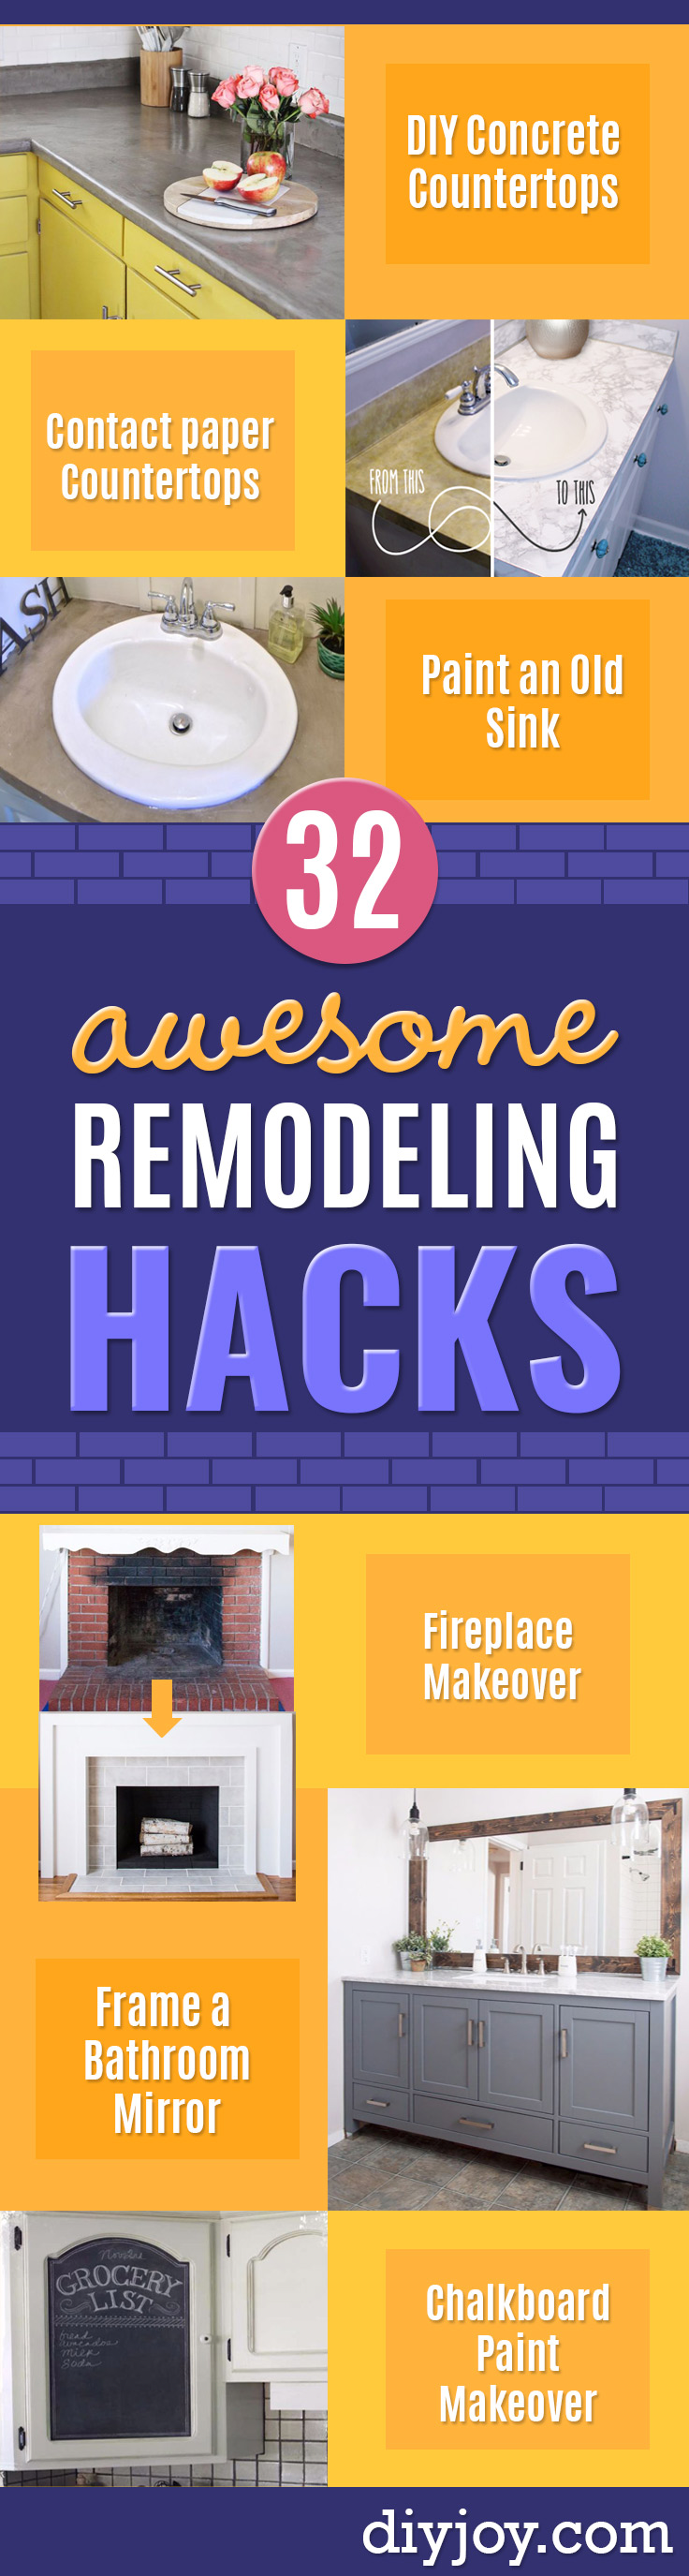 DIY Remodeling Hacks - Quick and Easy Home Repair Tips and Tricks - Cool Hacks for DIY Home Improvement Ideas - Cheap Ways To Fix Bathroom, Bedroom, Kitchen, Outdoor, Living Room and Lighting - Creative Renovation on A Budget - DIY Projects and Crafts by DIY JOY http://diyjoy.com/diy-remodeling-hacks